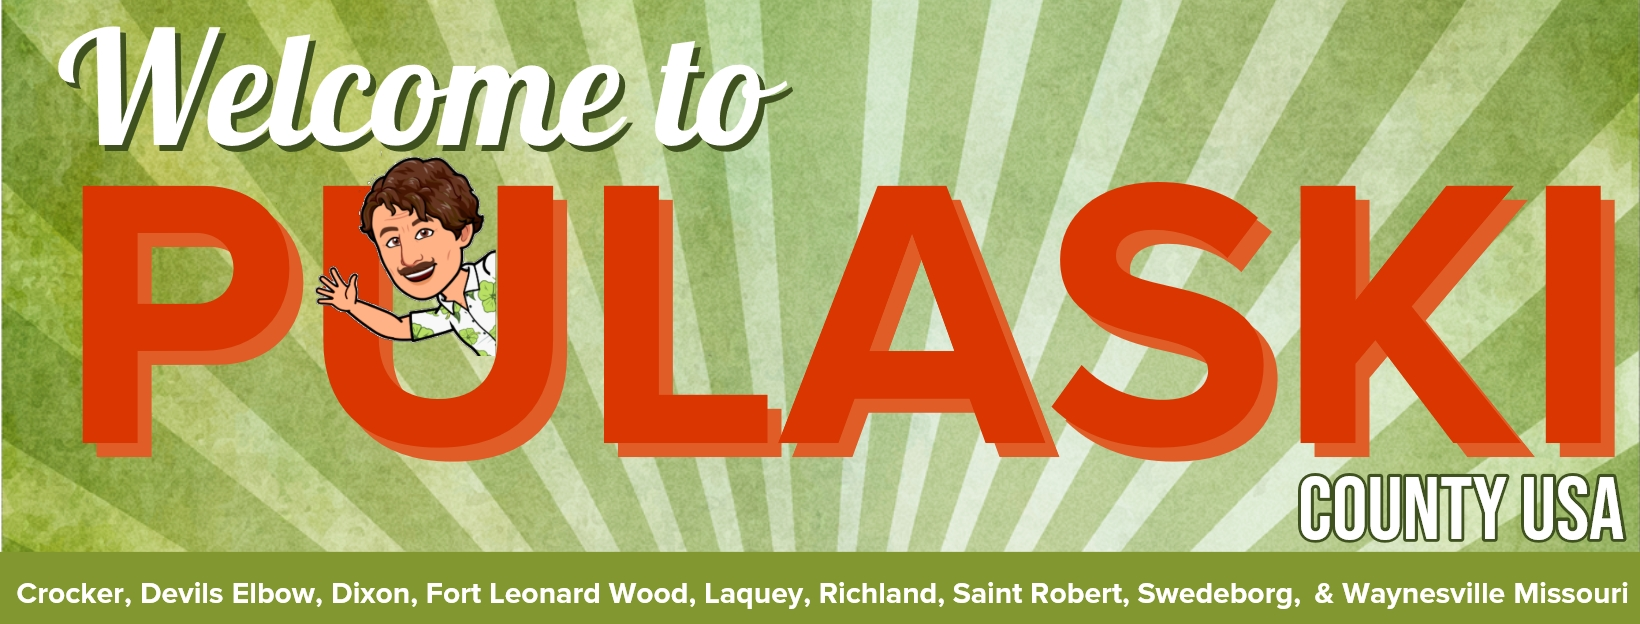 Welcome to Pulaski County USA!